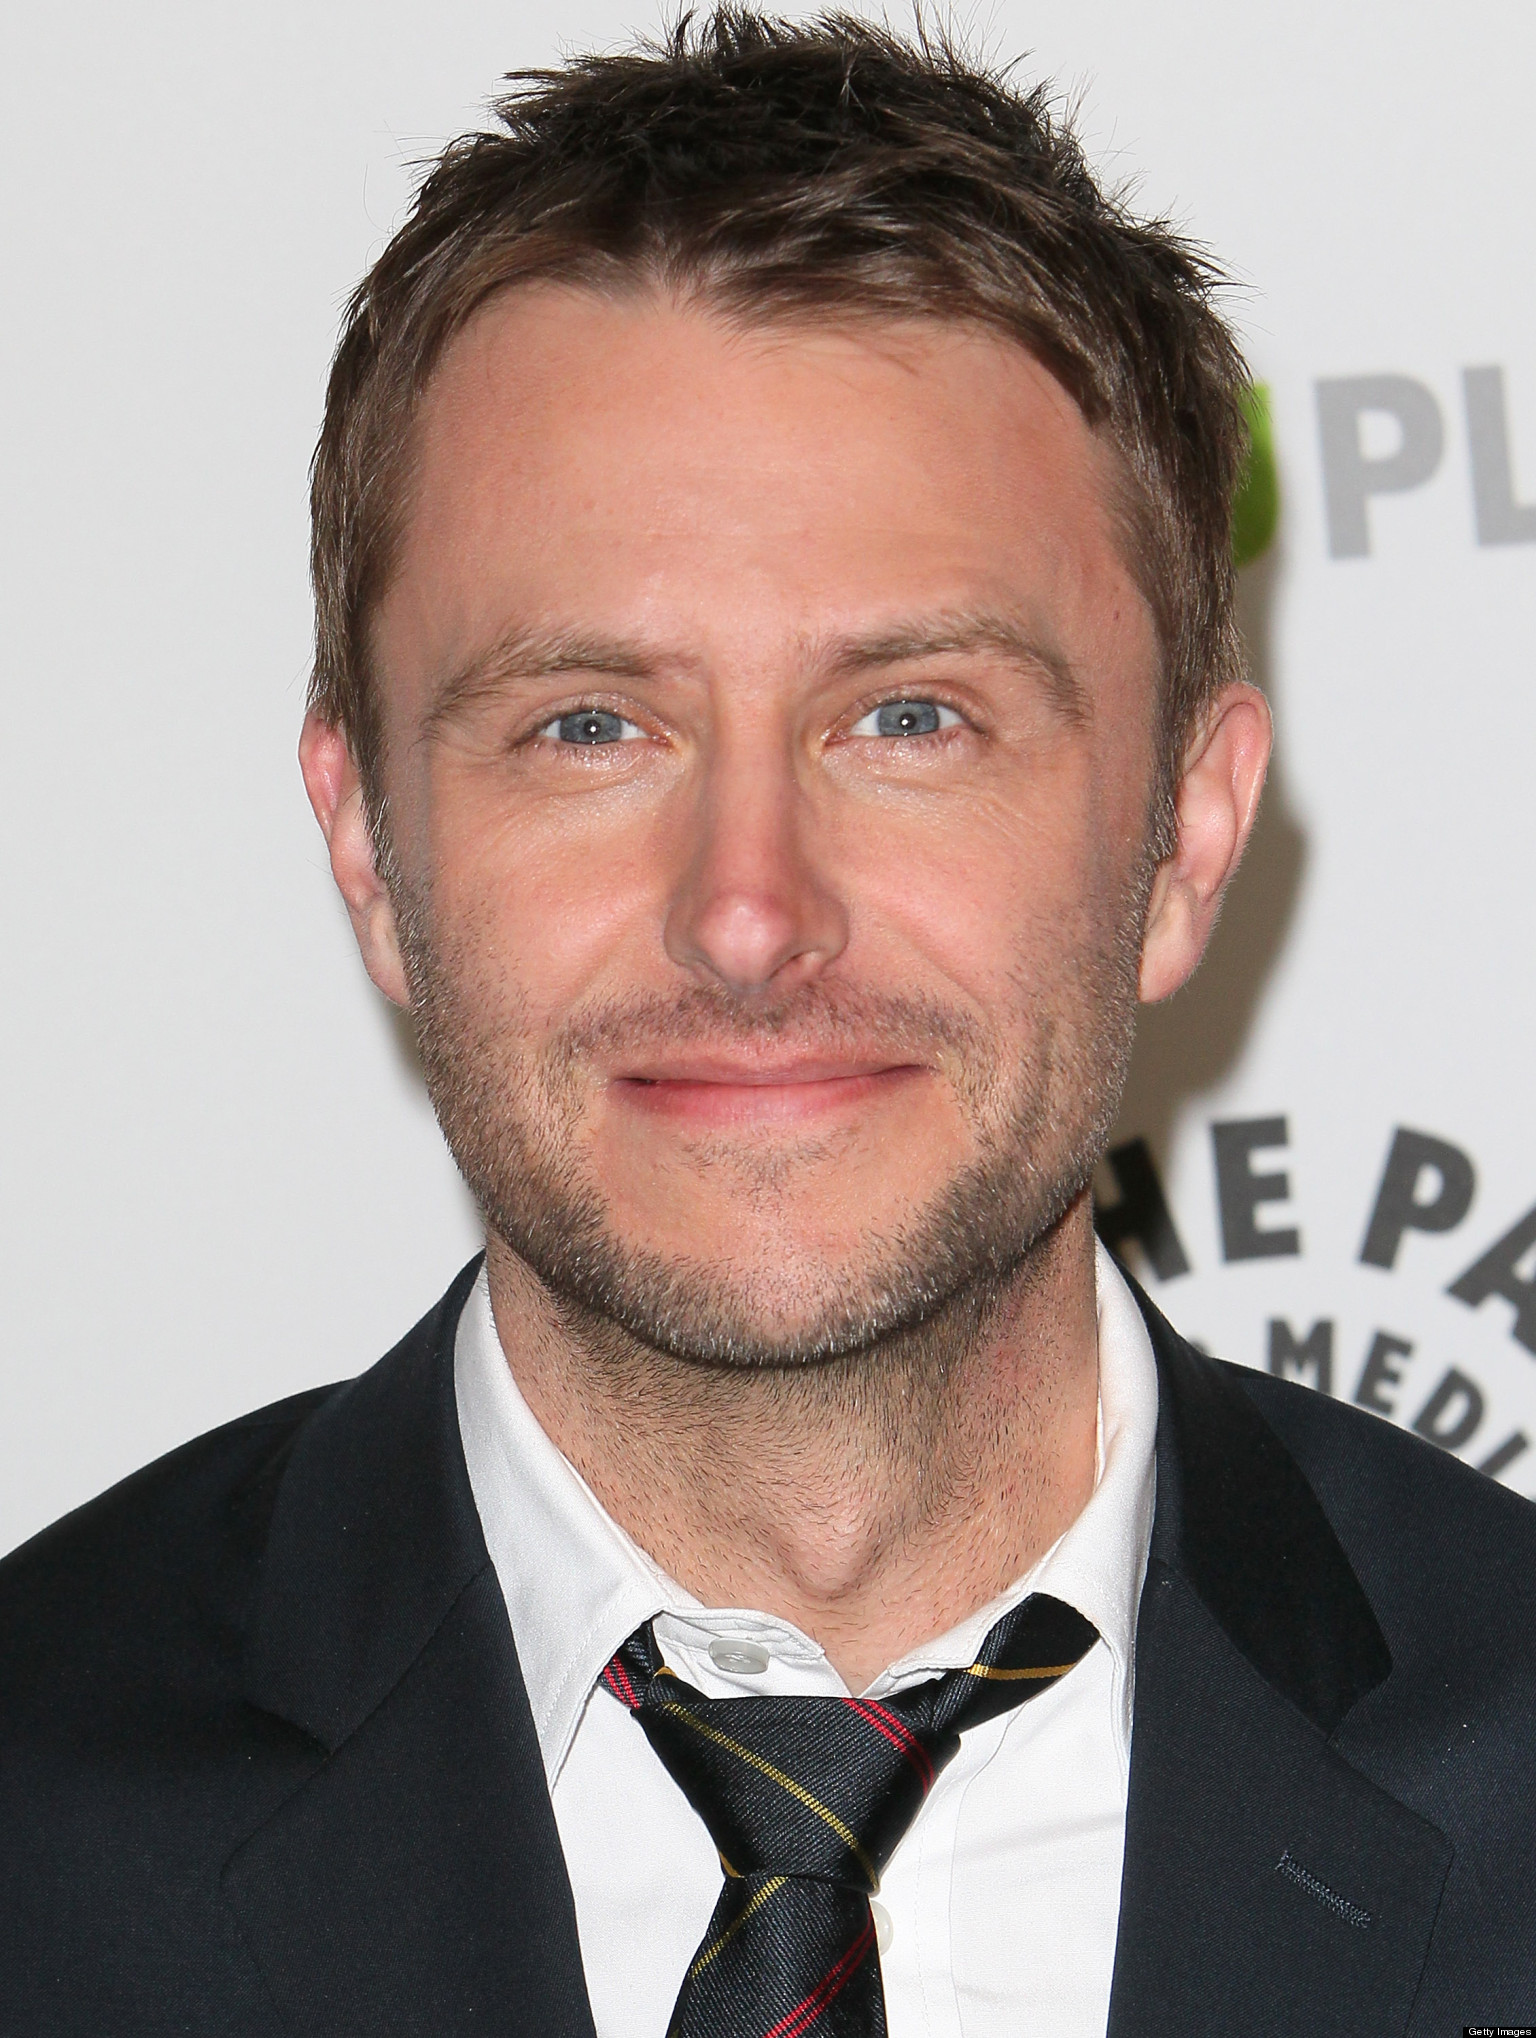 The 45-year old son of father Billy Hardwick and mother Sharon Hills, 178 cm tall Chris Hardwick in 2017 photo